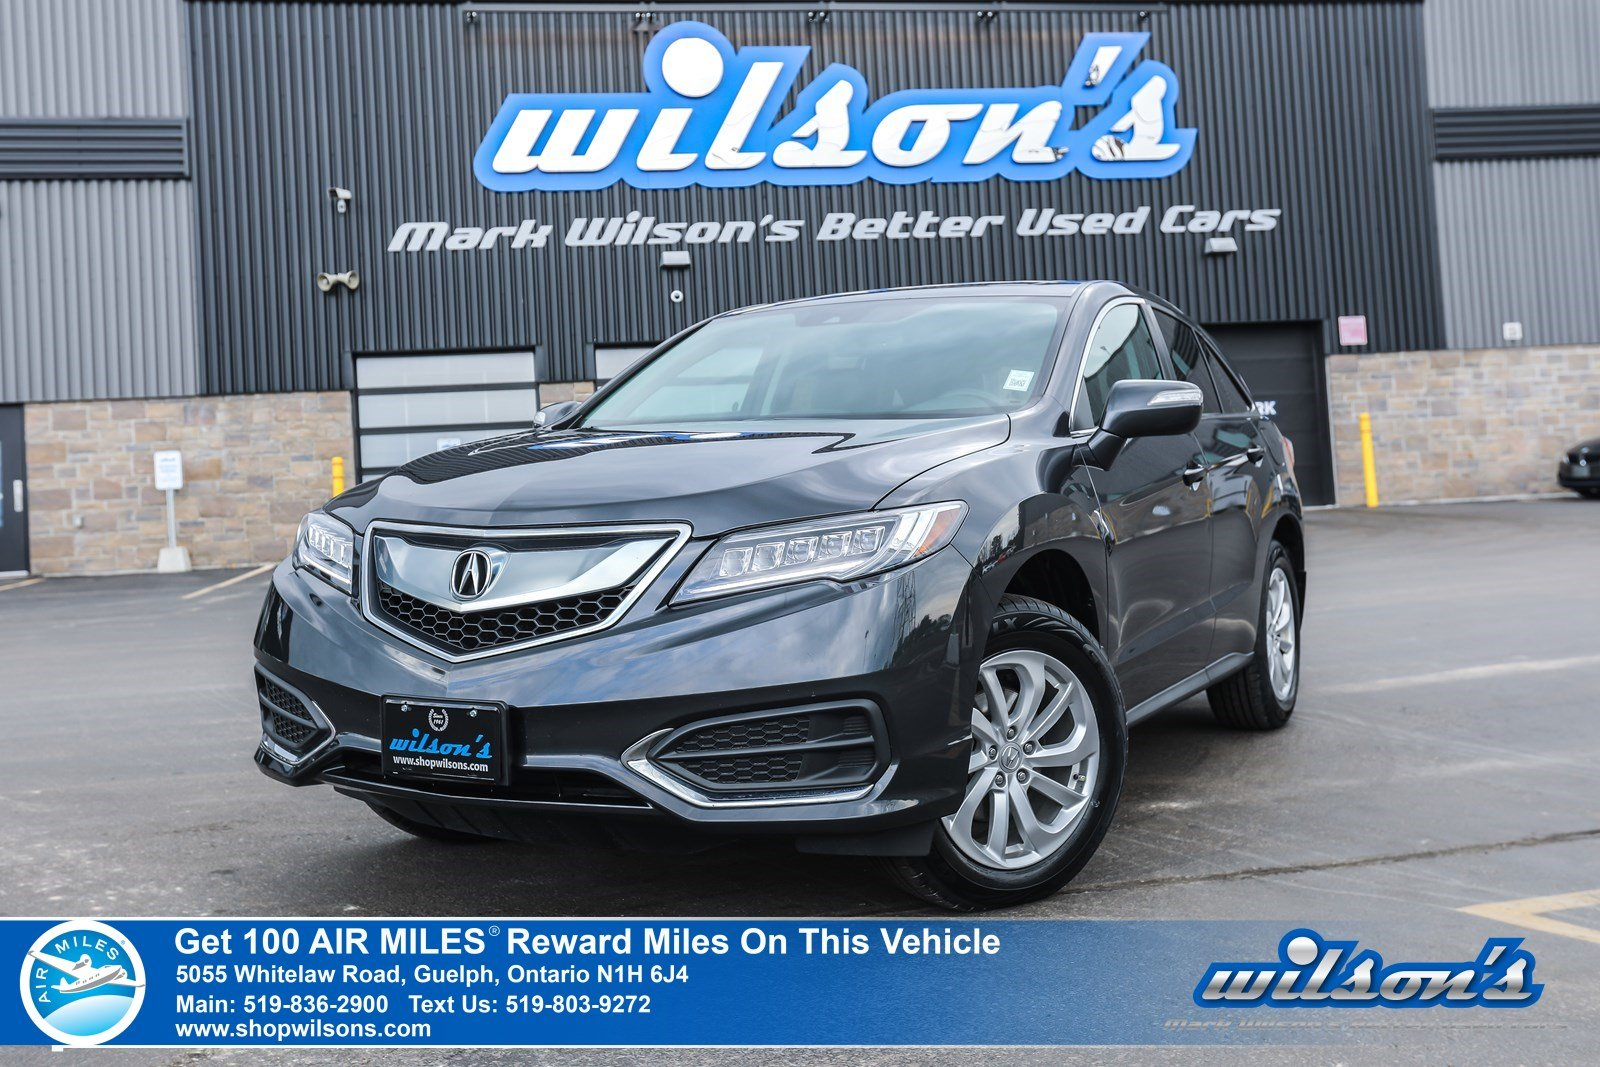 Certified Pre-Owned 2016 Acura RDX AWD Used - NEW TIRES! Leather, Sunroof, Heated Seats, Bluetooth, Rear Camera, Alloys and more!